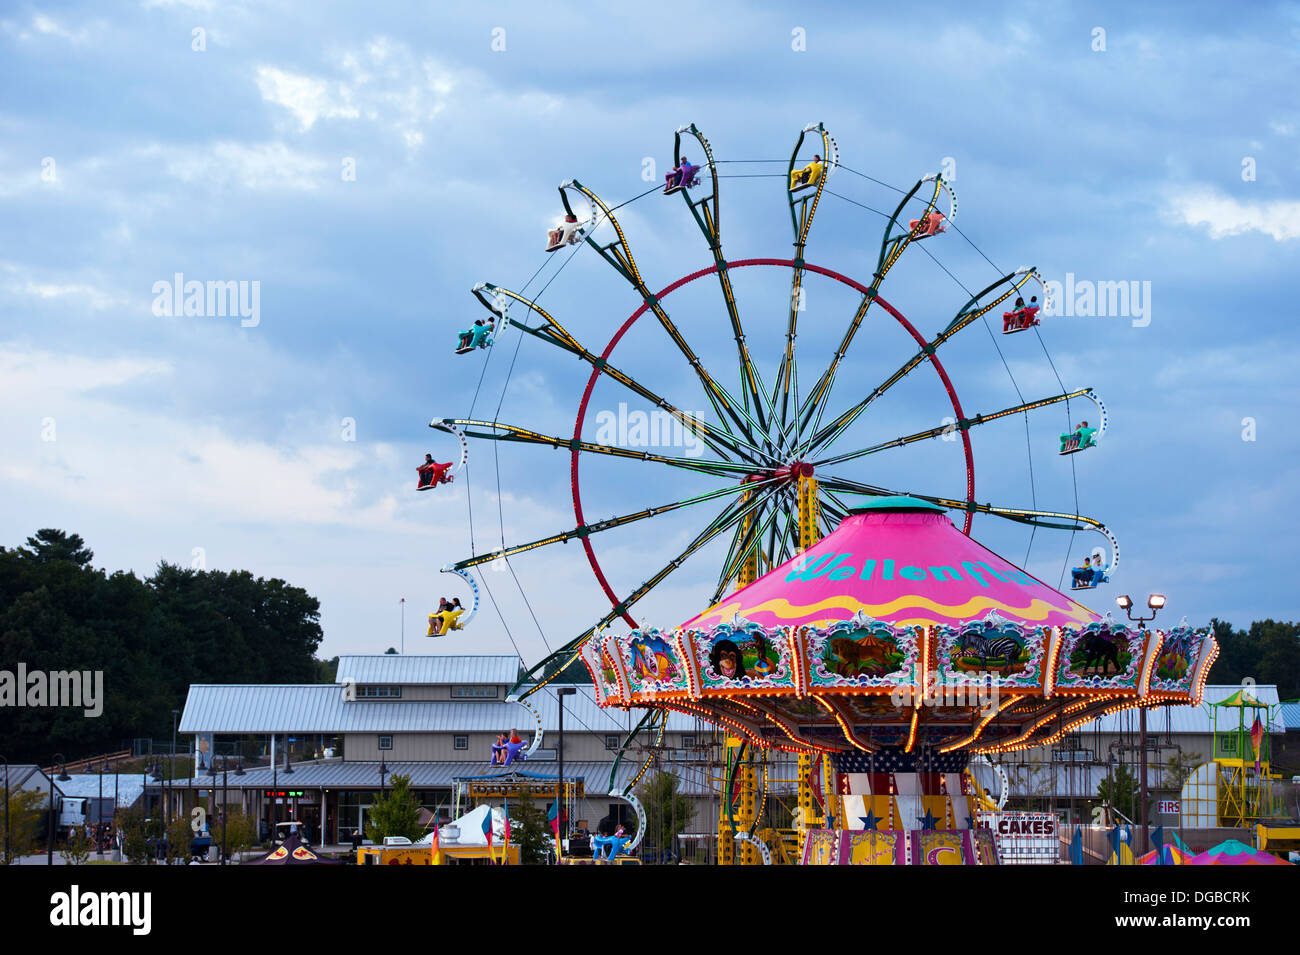 A carnival ride / Farris Wheel in action at the Mountain State Fair in Asheville, North Carolina - Stock Image